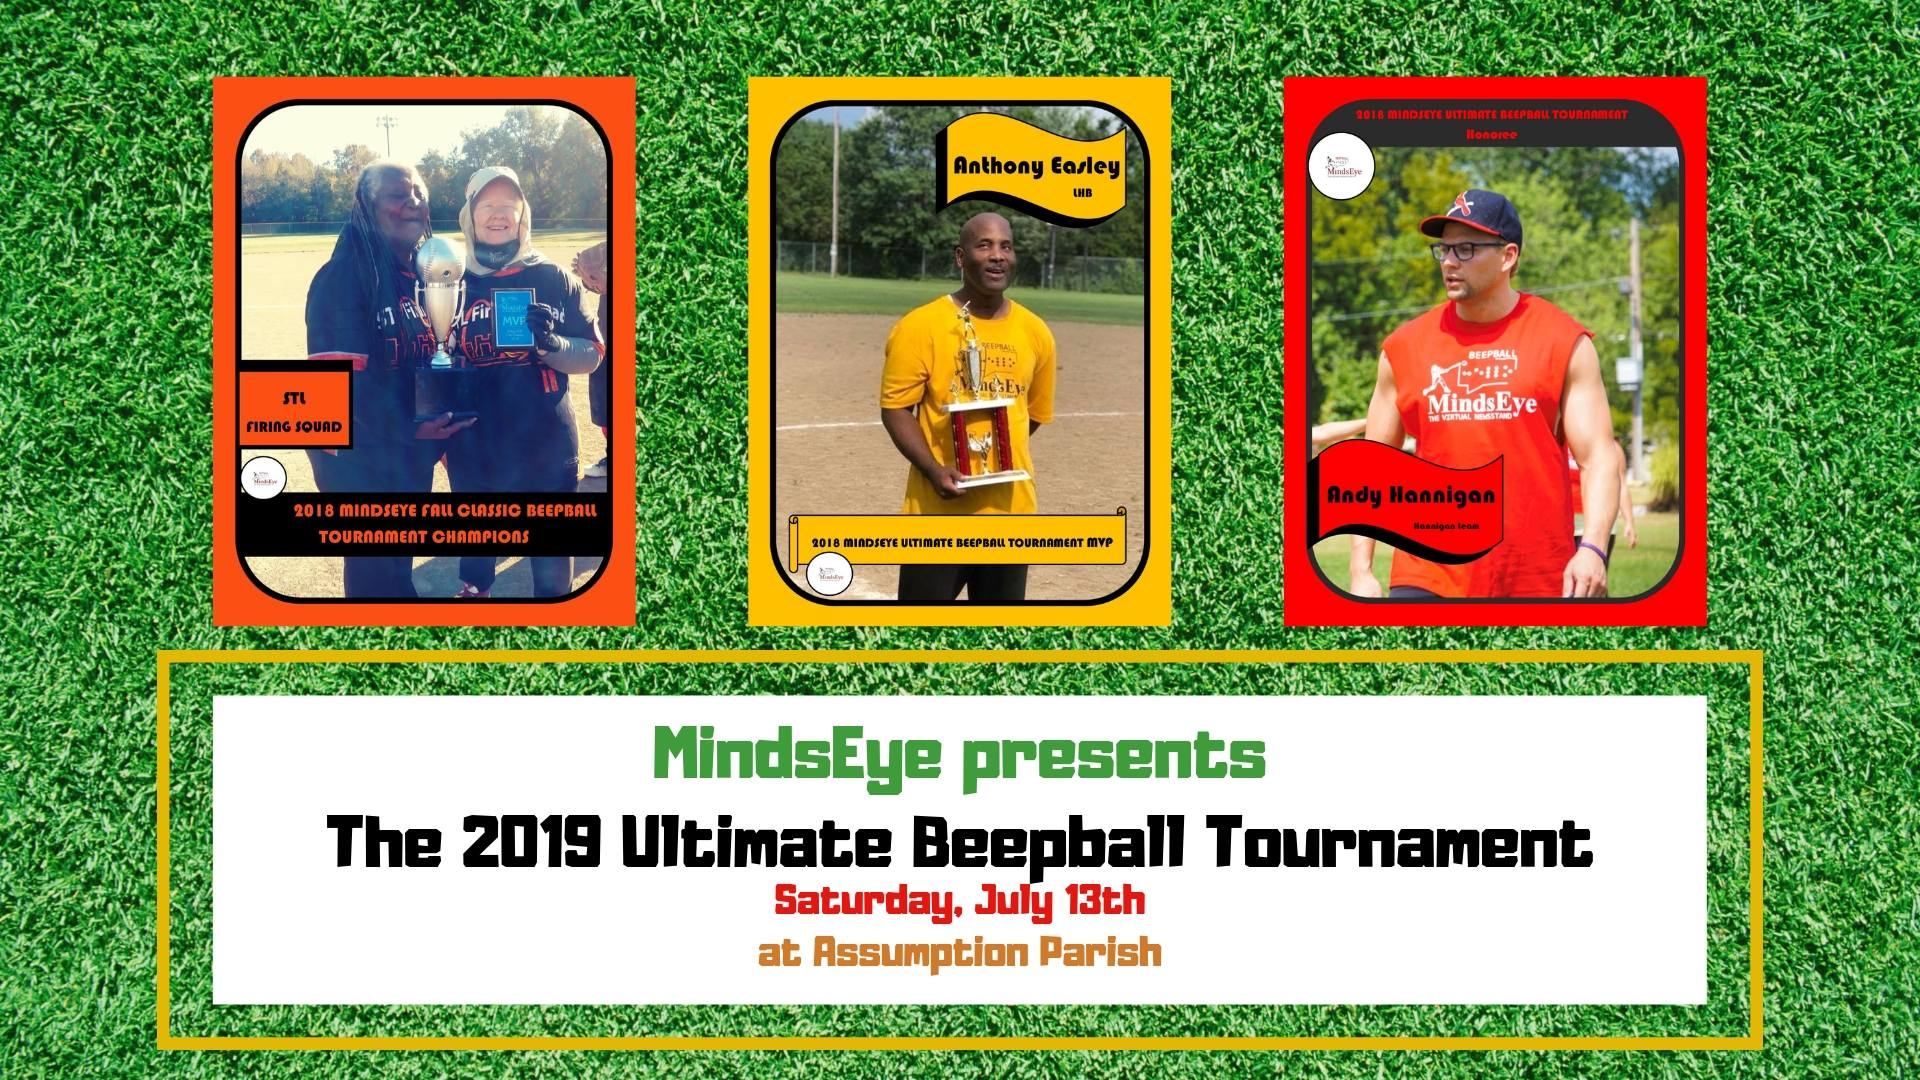 MindsEye presents The 2019 Ultimate Beepball Tournament on Saturday, July 13th at Assumption Parish